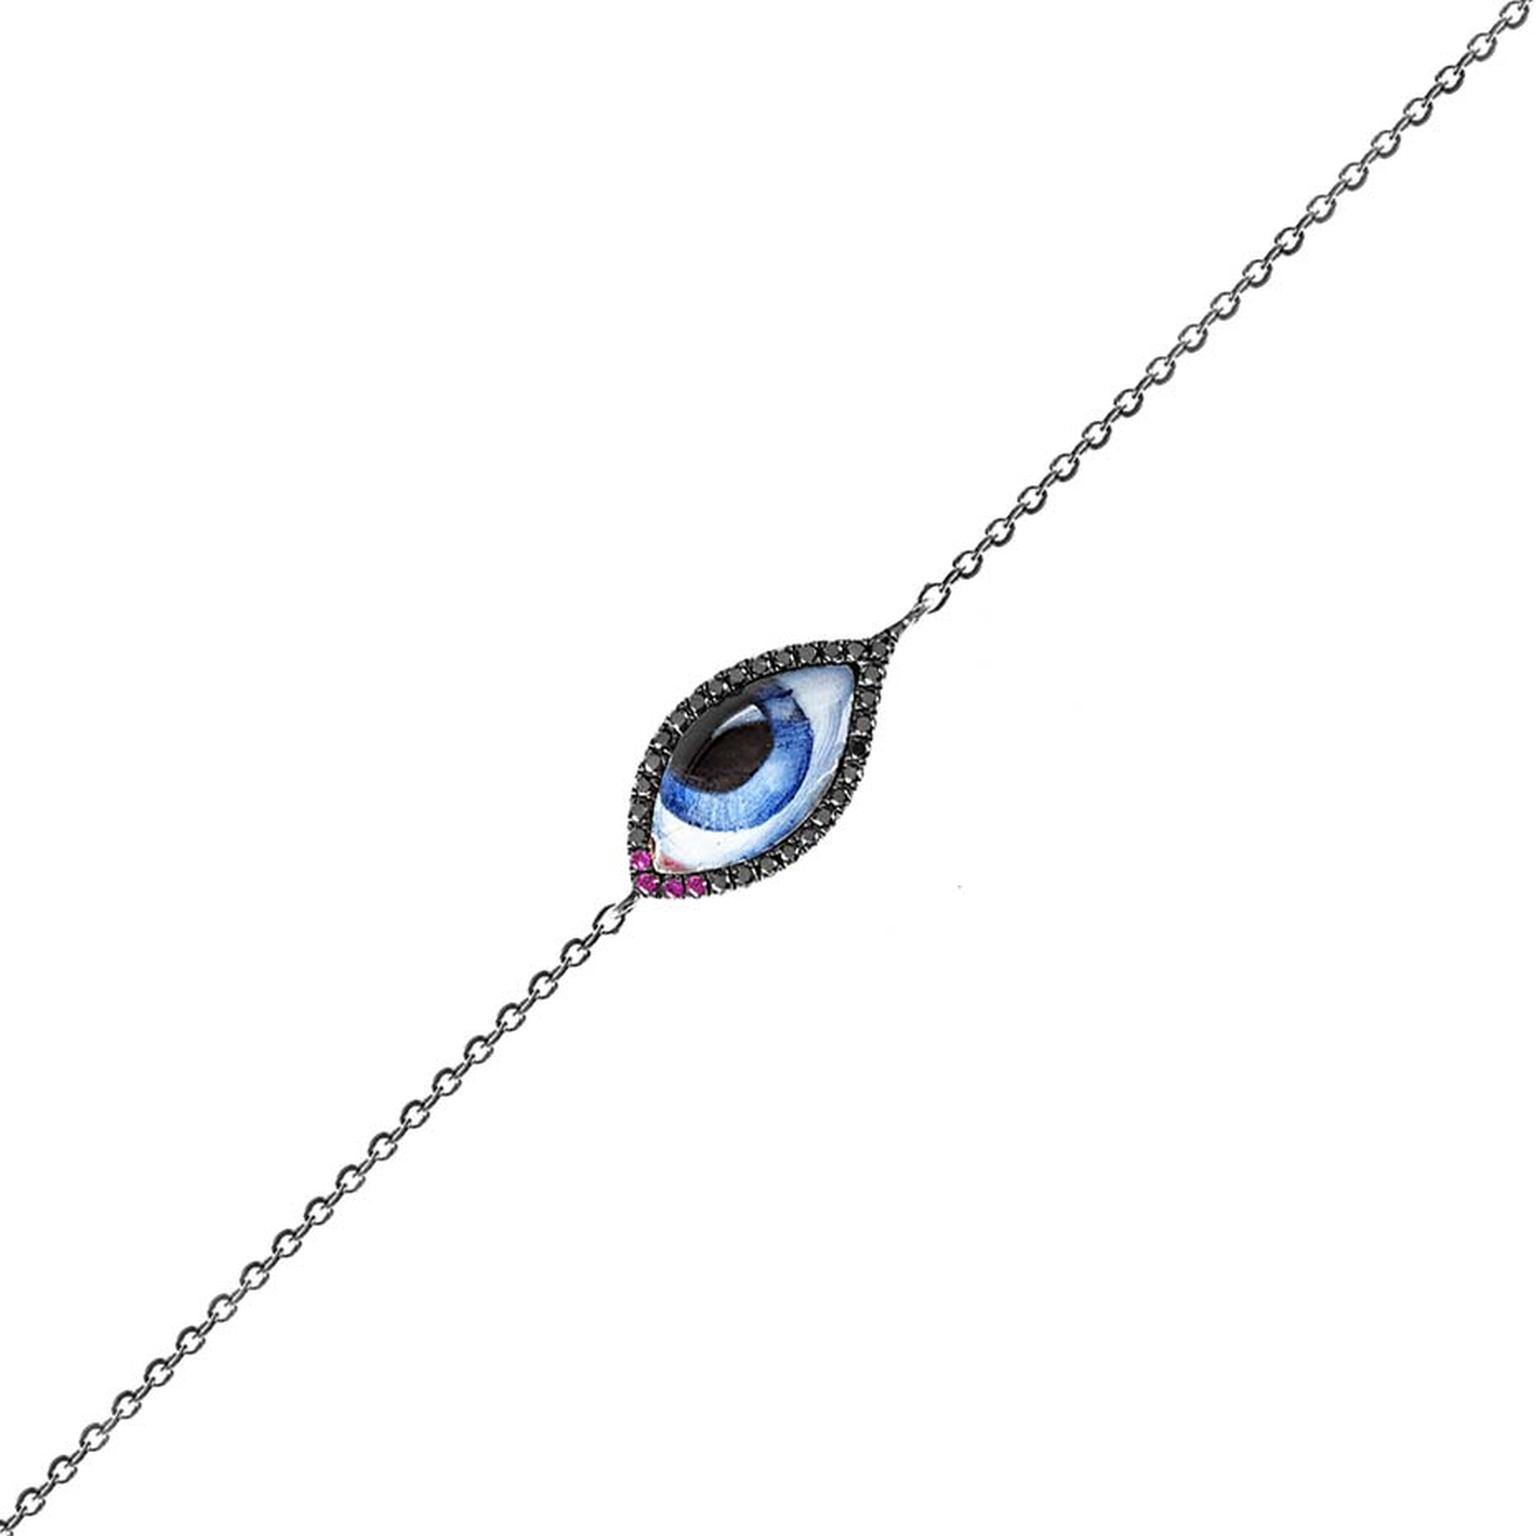 Lito Tu Es Partout bracelet featuring a blue enamelled eye and black diamonds.